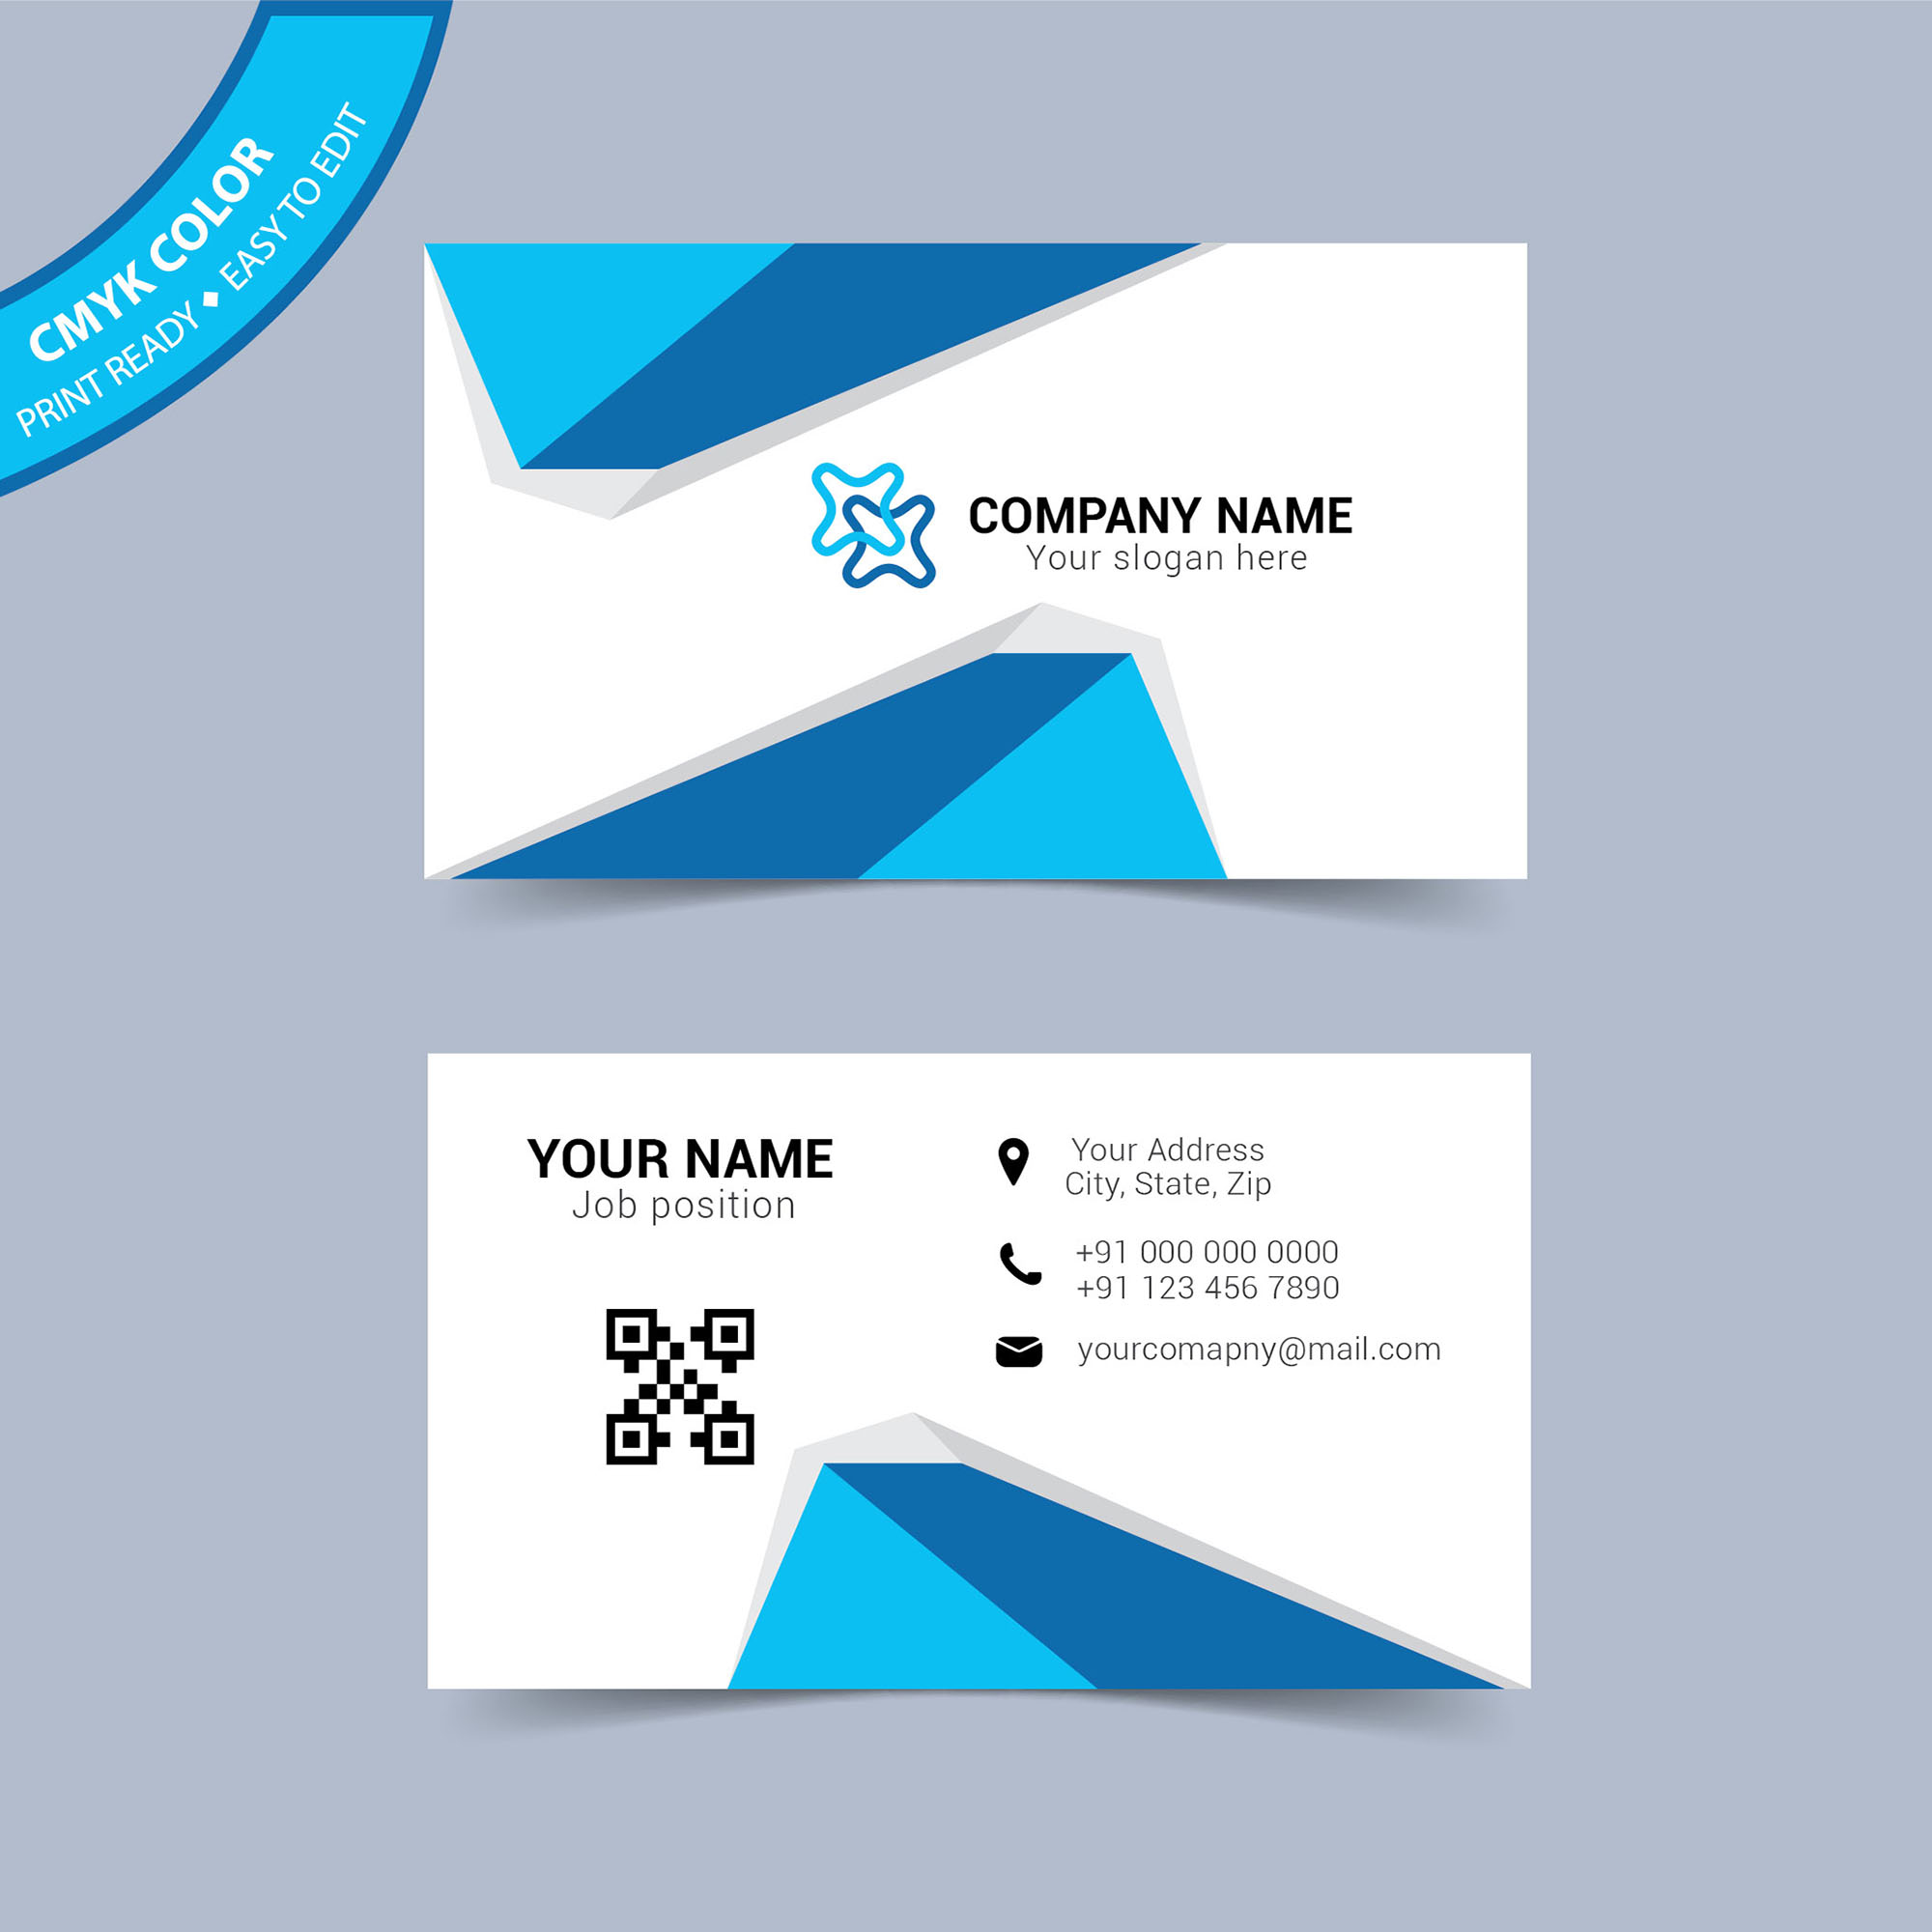 Business card layout template free download wisxi business card business cards business card design business card template design templates wajeb Image collections